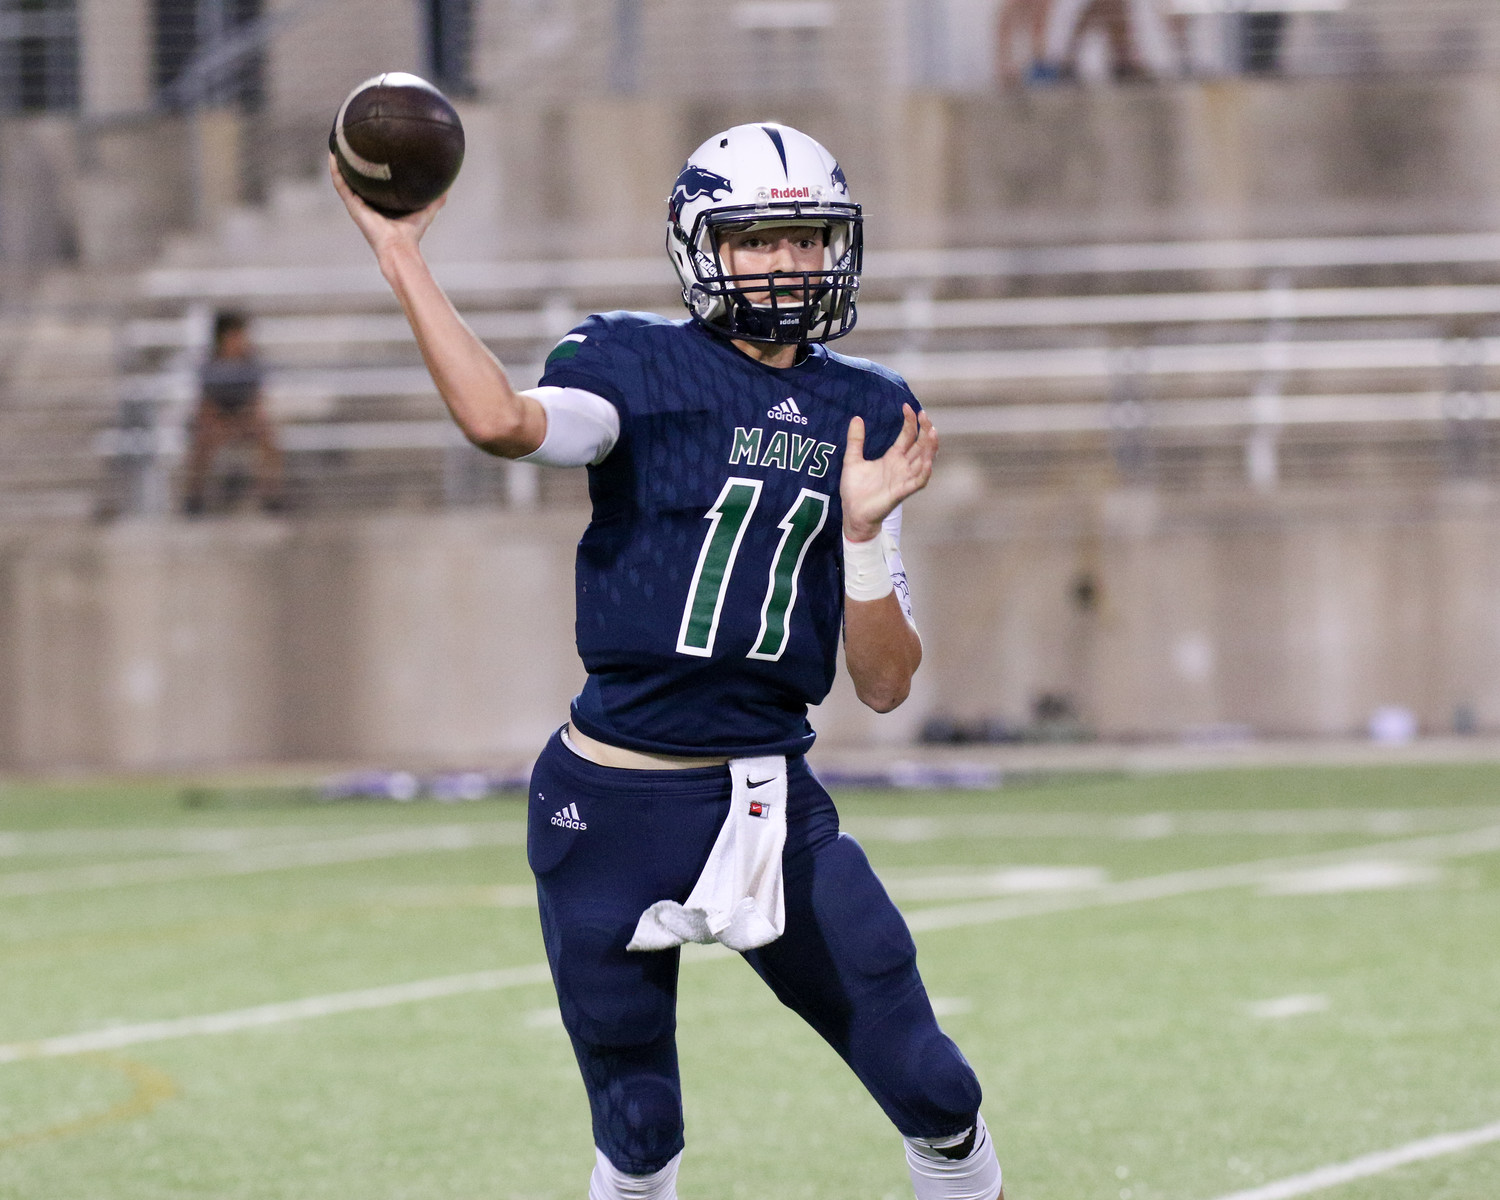 McNeil Mavericks junior quarterback Zane Kampfer (11) passes the ball during the high school football game between the McNeil Mavericks and the Cedar Ridge Raiders at the Kelly Reeves Athletic Compex in Round Rock, Texas, on October 6, 2017.